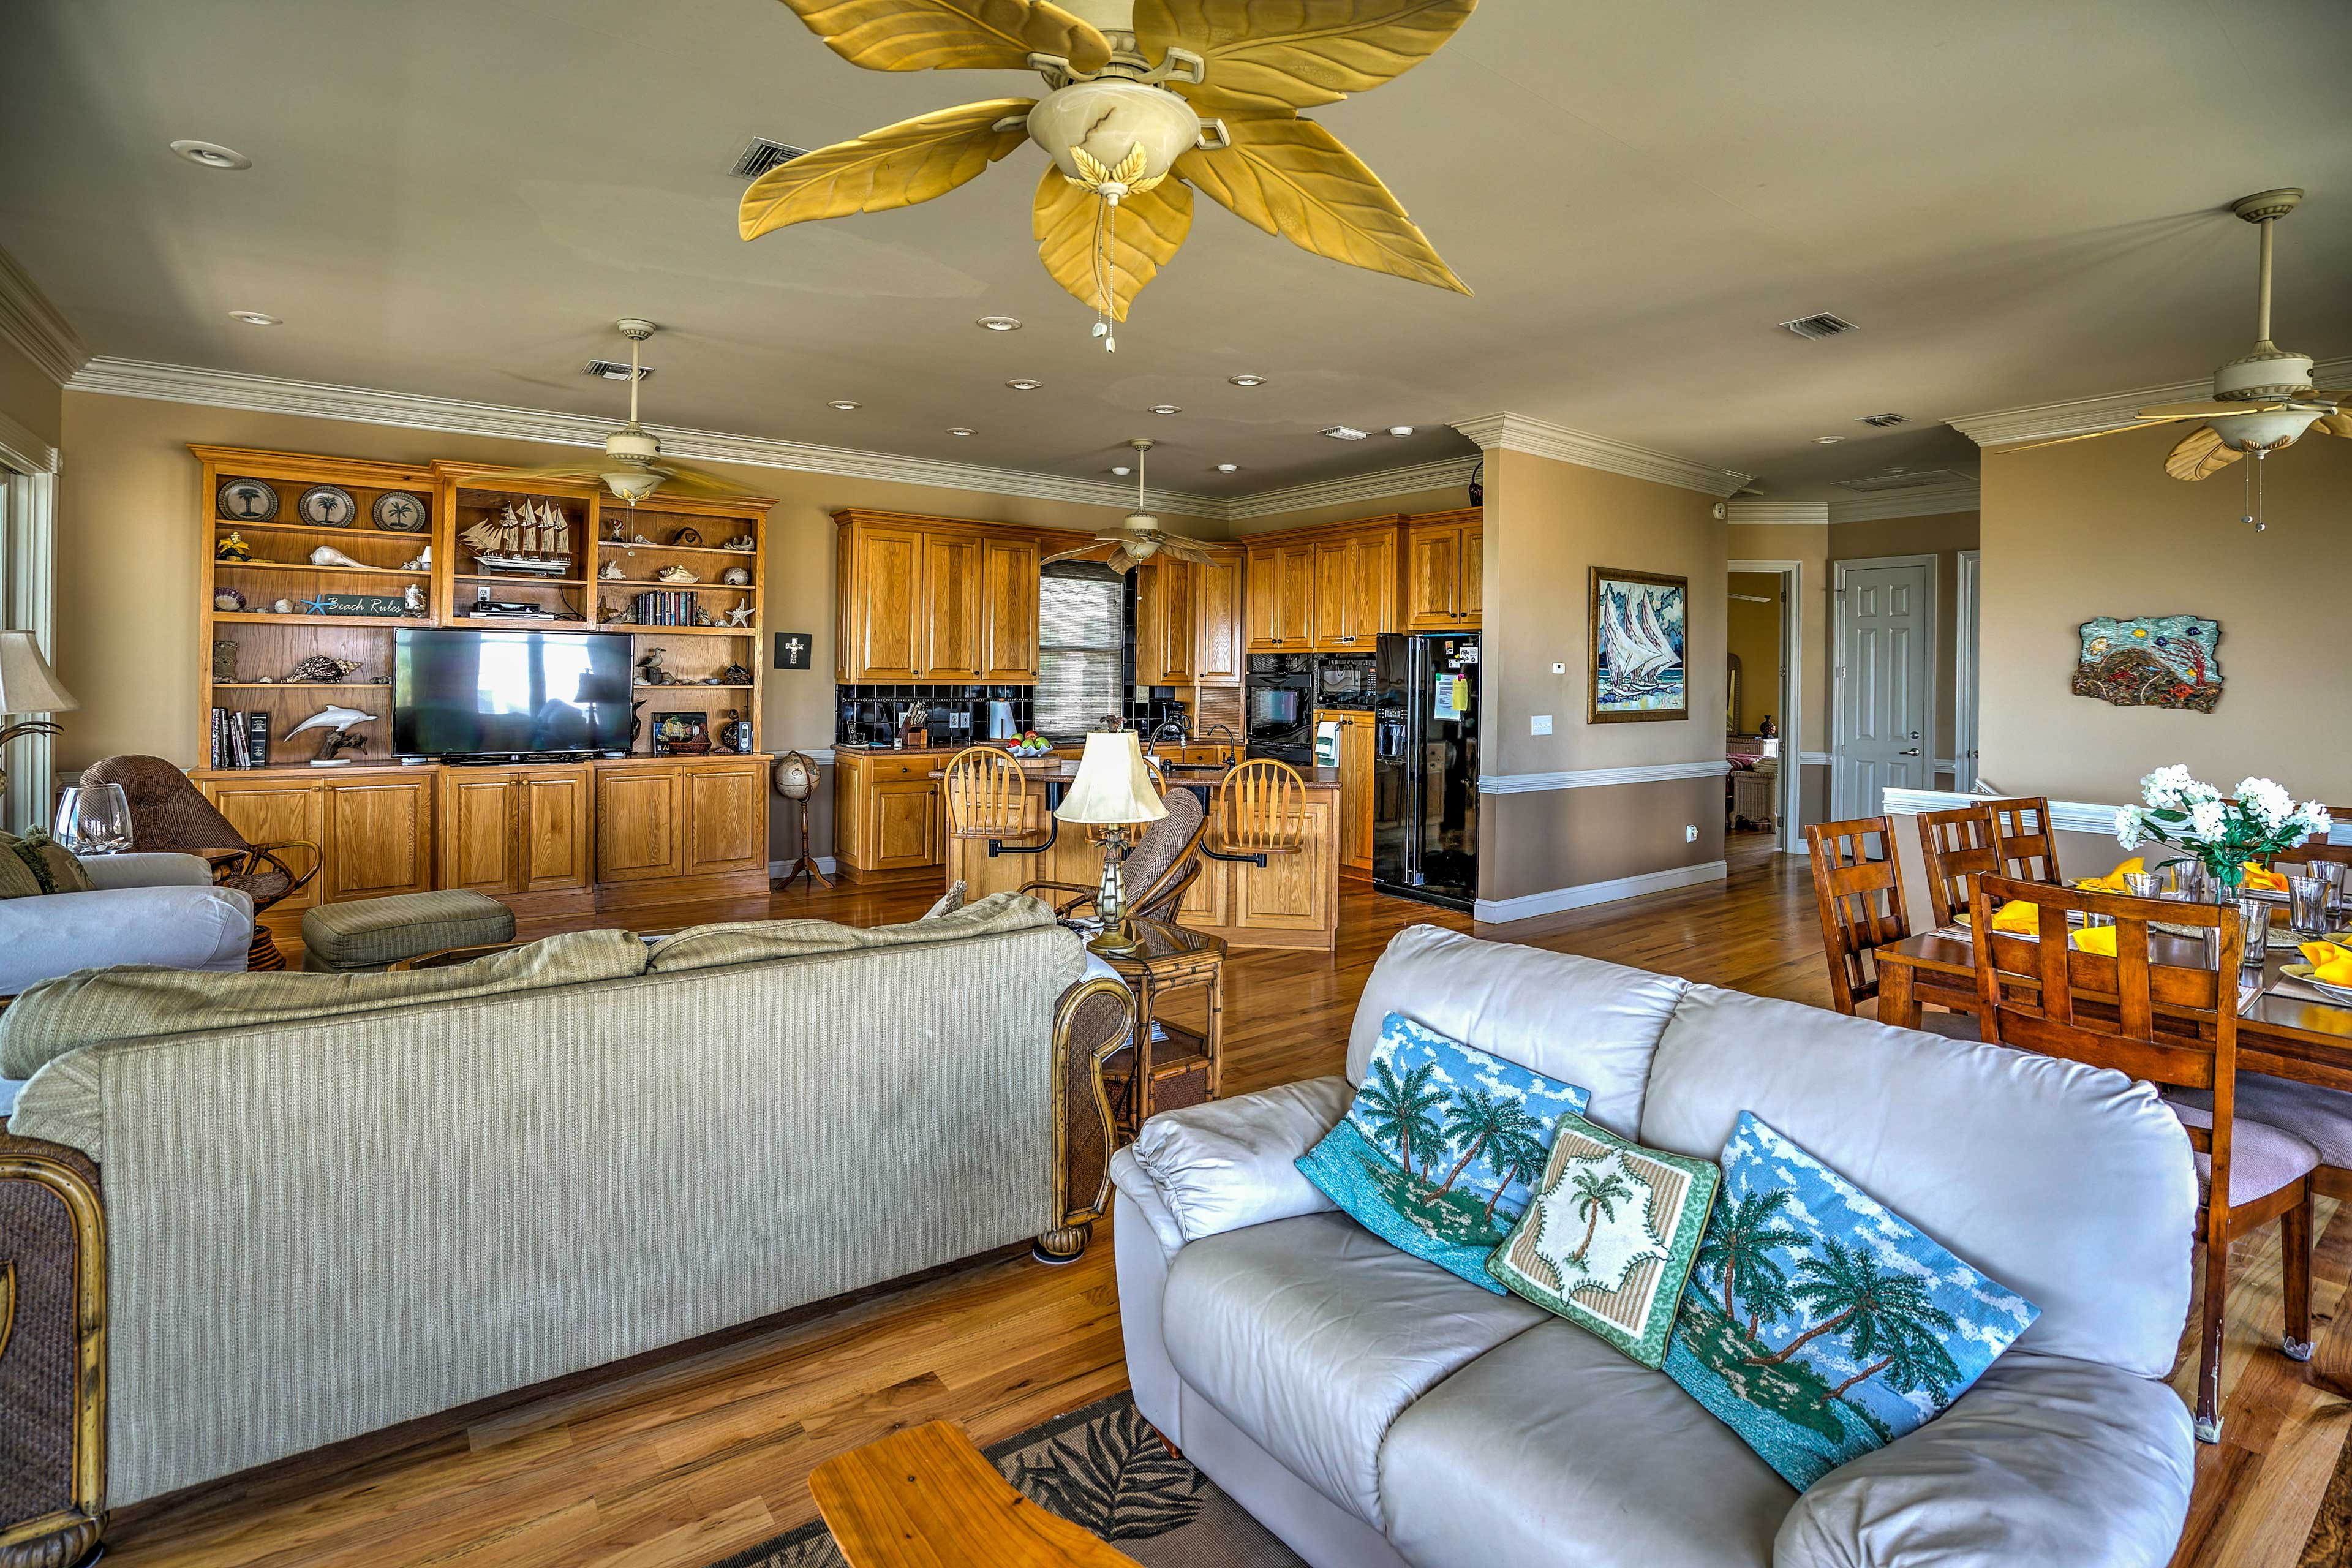 Kick back and relax in the comfy living area and watch a movie on the cable TV.